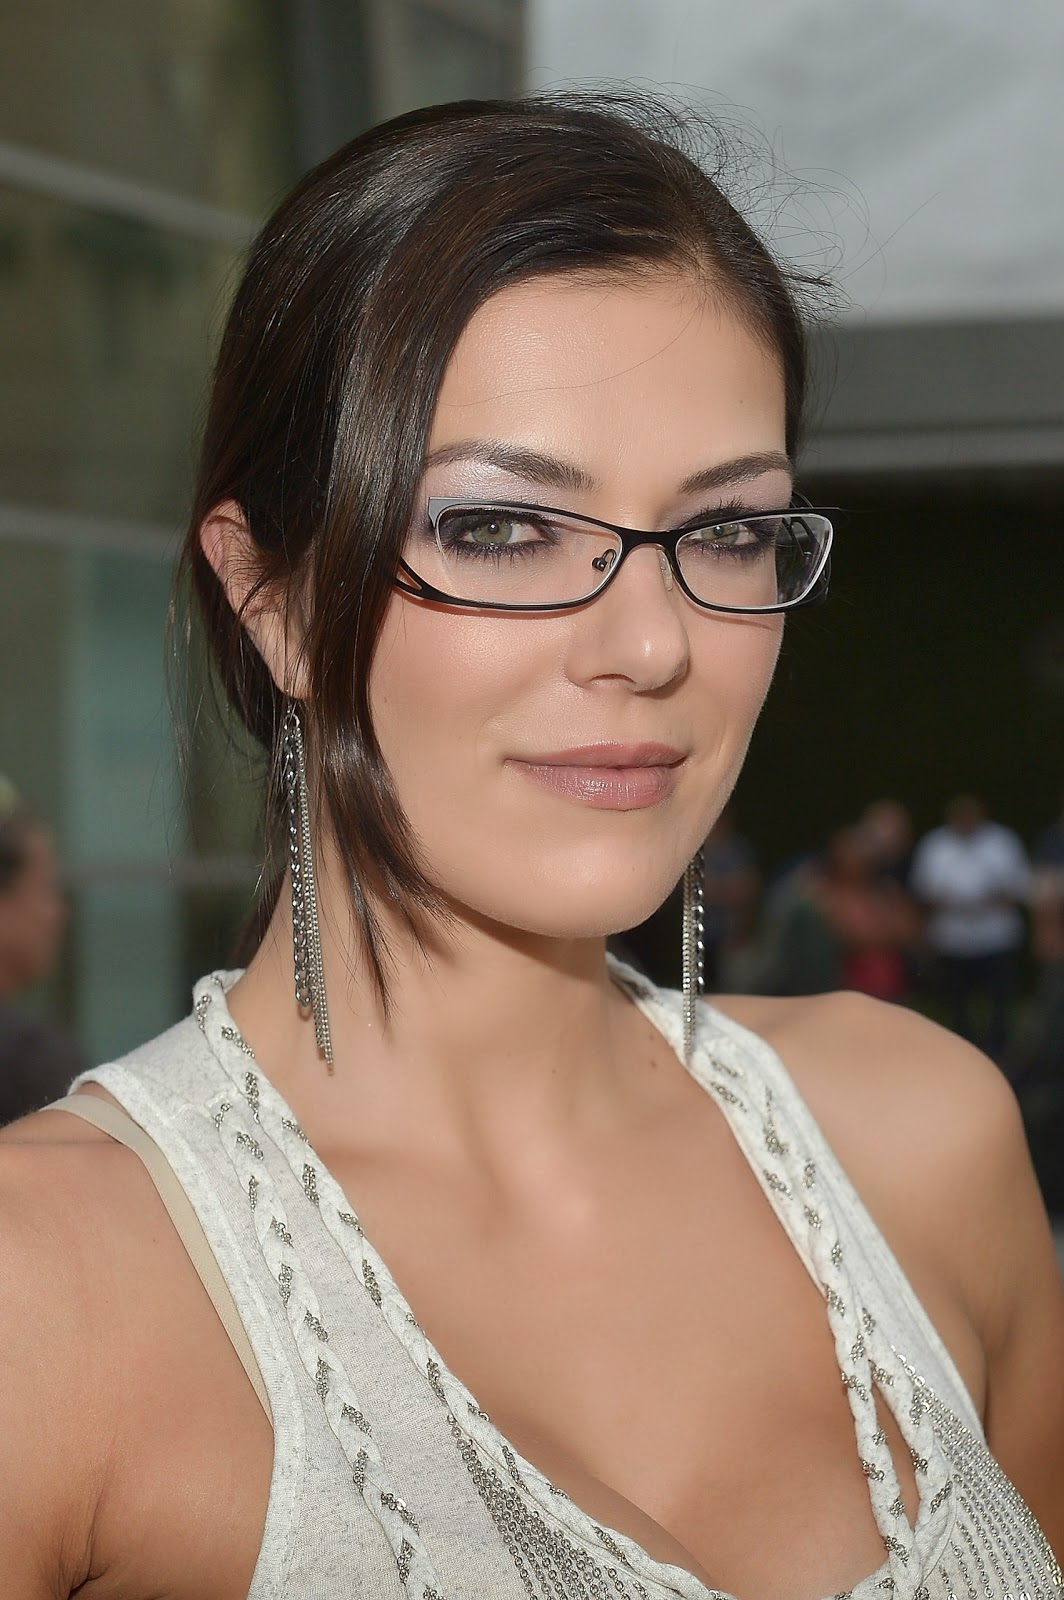 Bollywood Singers Hd Wallpapers Adrianne Curry Hot Model 171 Celebrities Hot Wallpapers